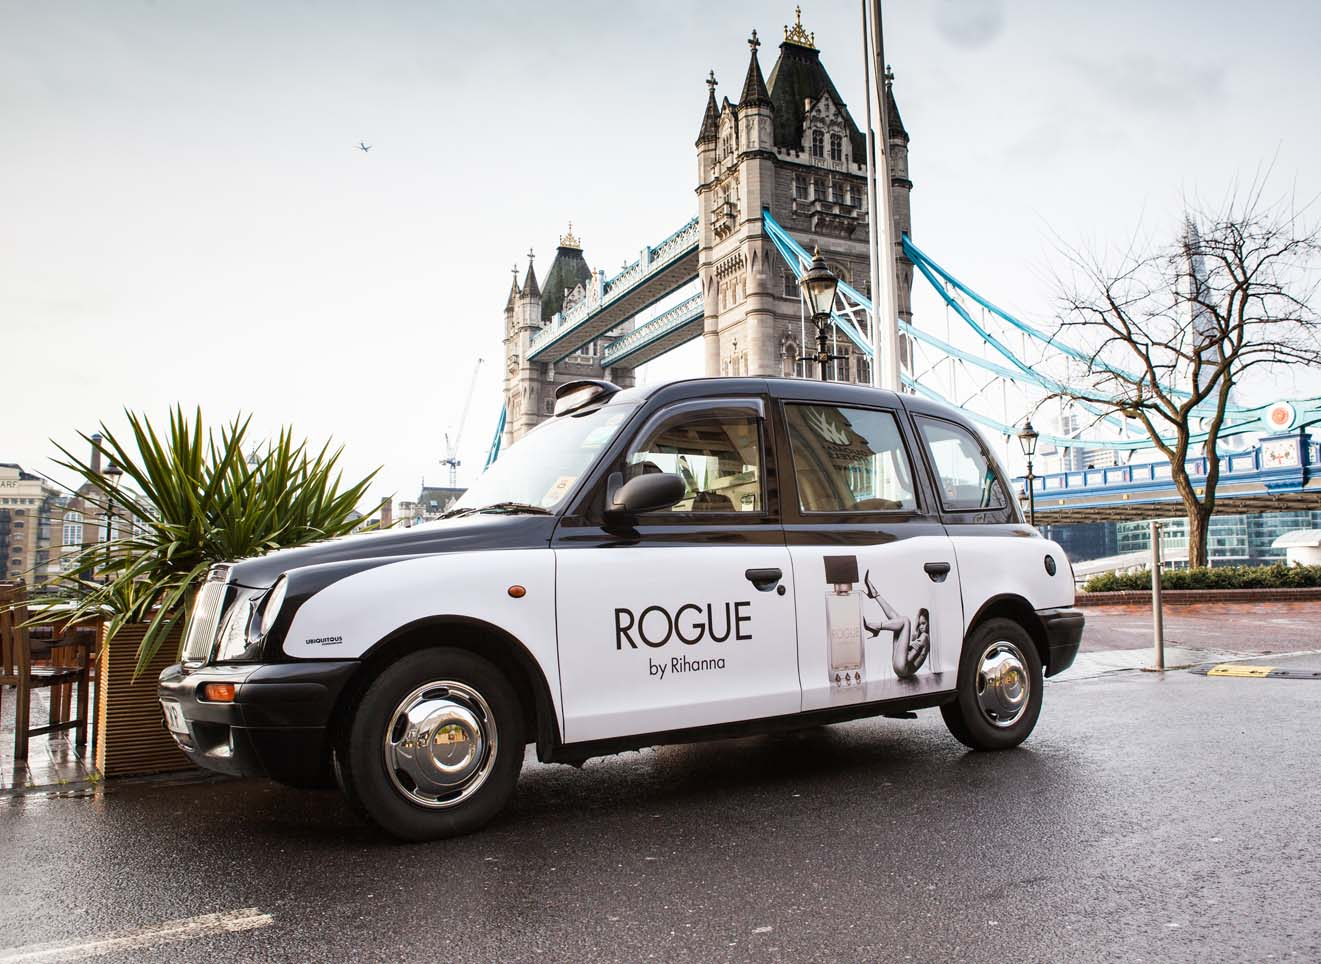 2014 Ubiquitous taxi advertising campaign for Perfumes by Rihanna - Rogue by Rihanna